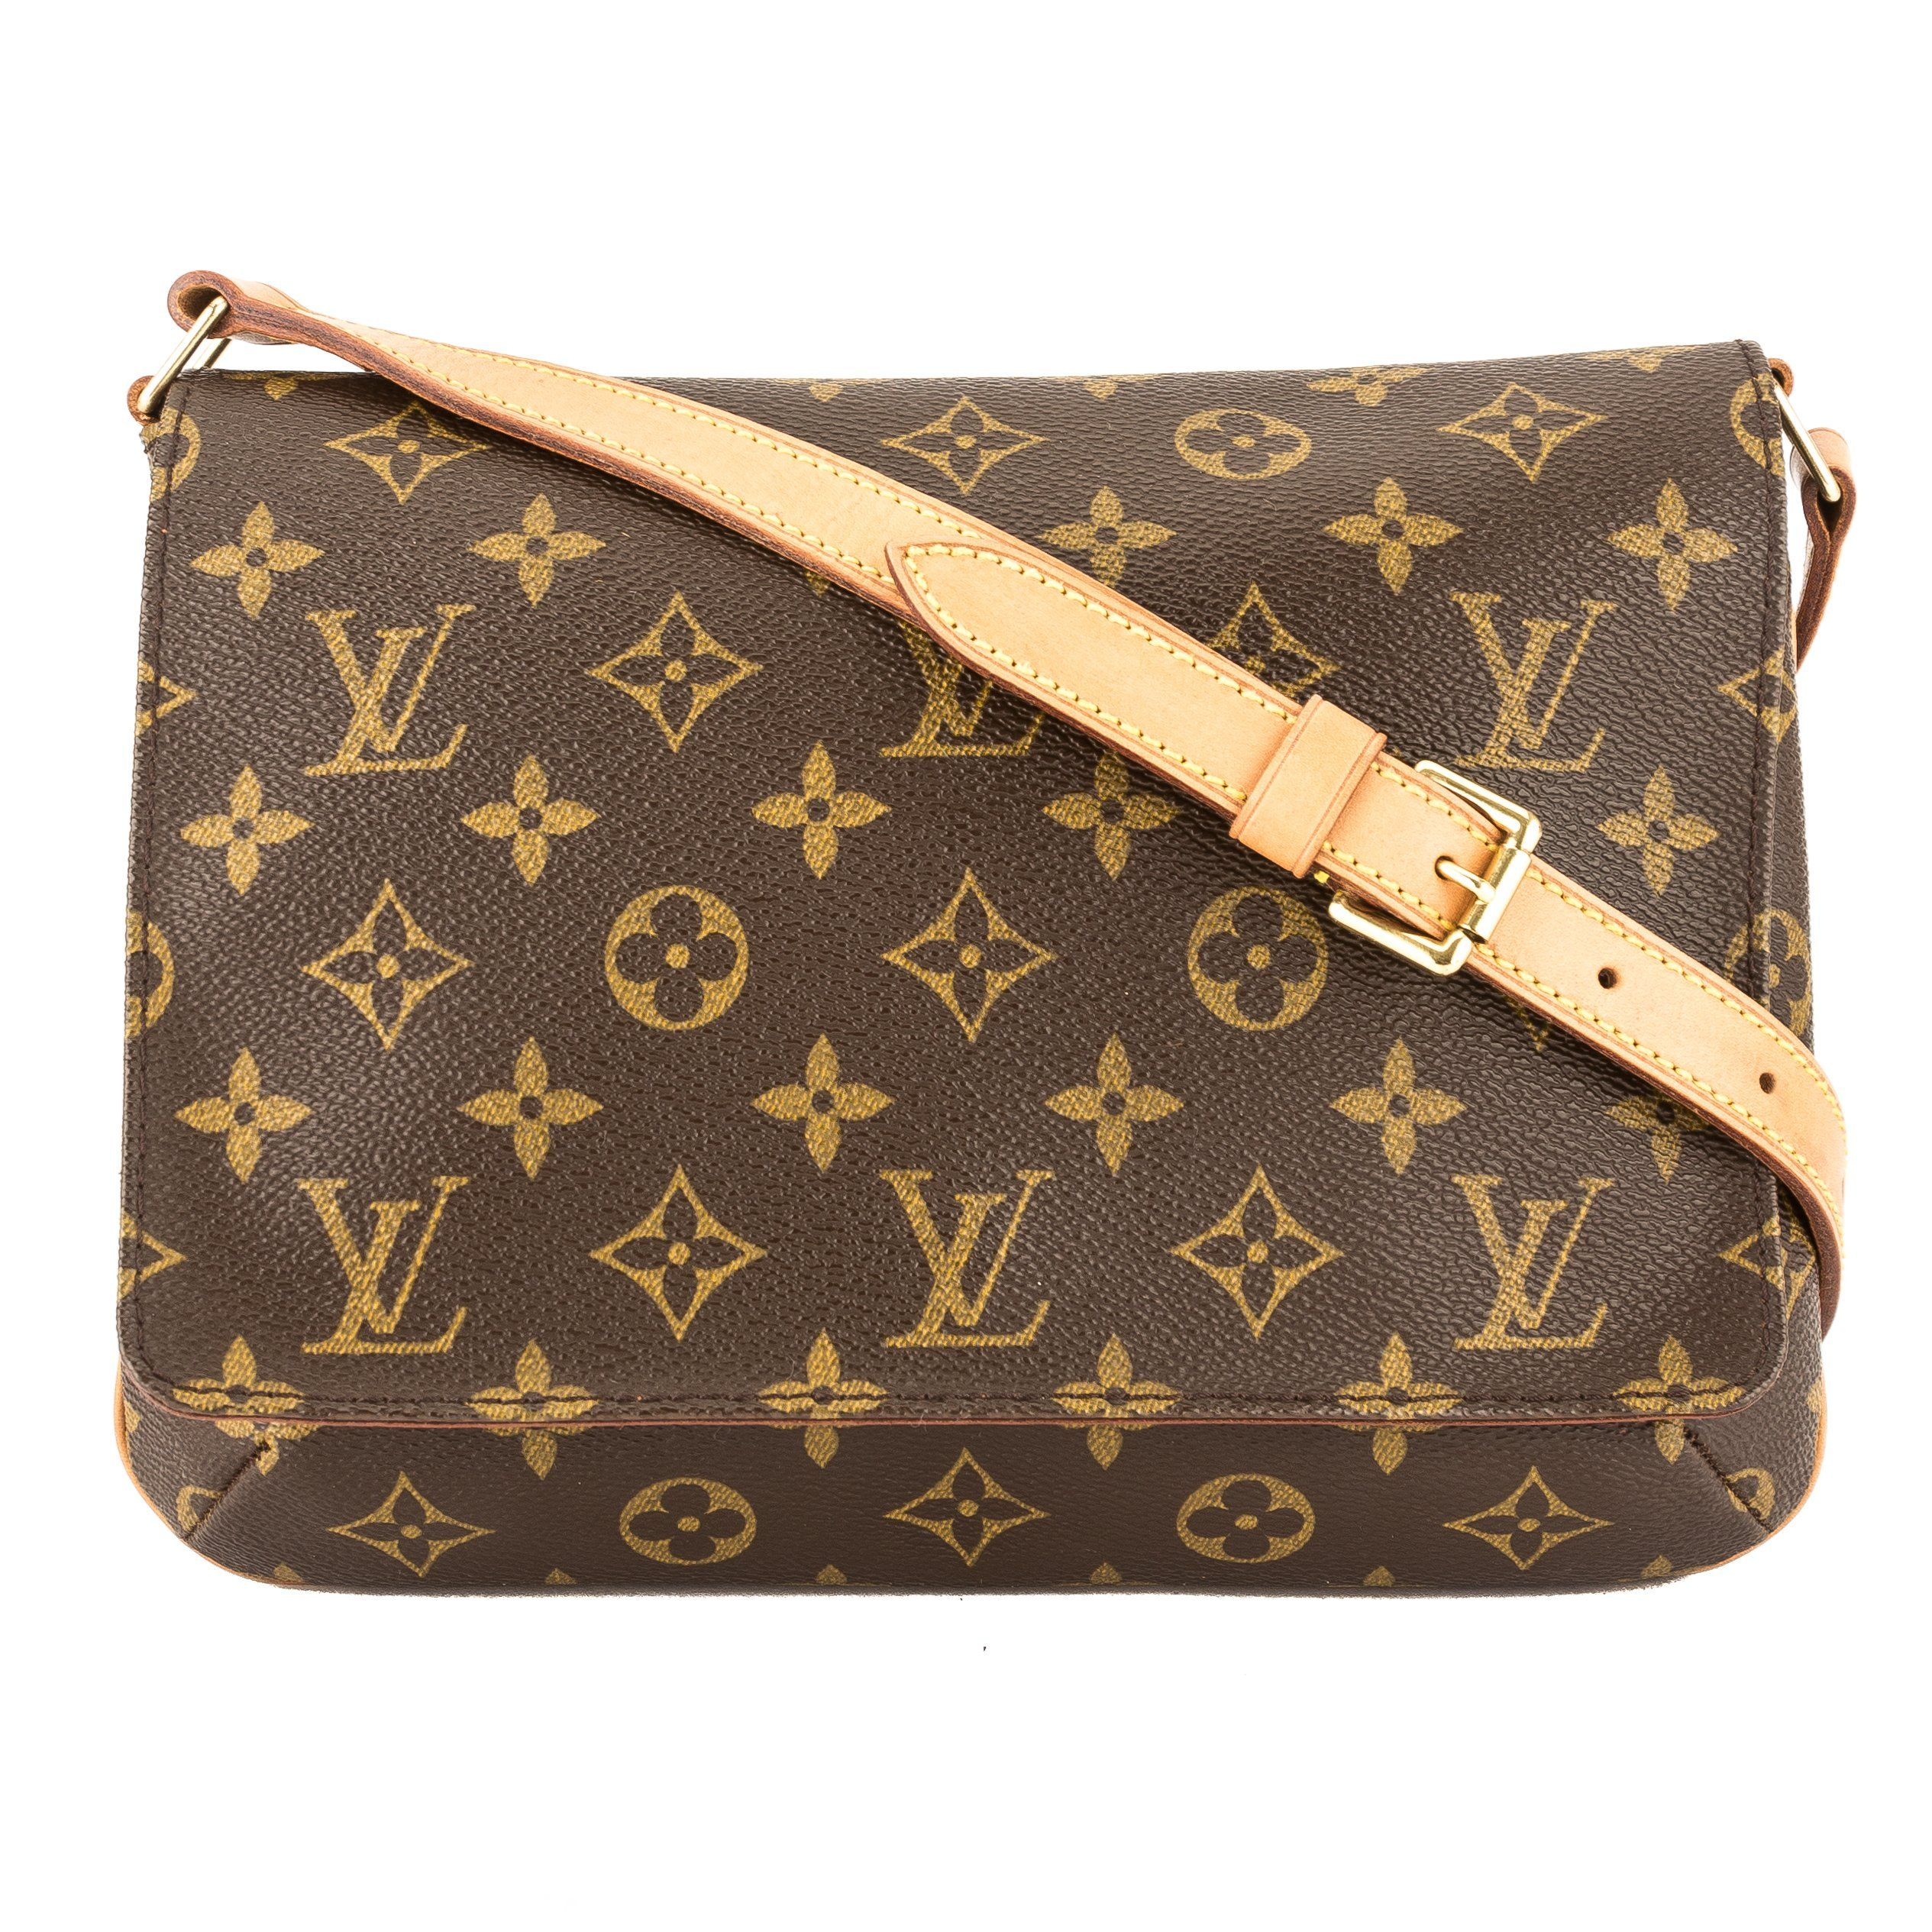 1ffdc3c76cd7 Louis Vuitton Monogram Canvas Musette Tango Short Strap Bag (Pre Owned)